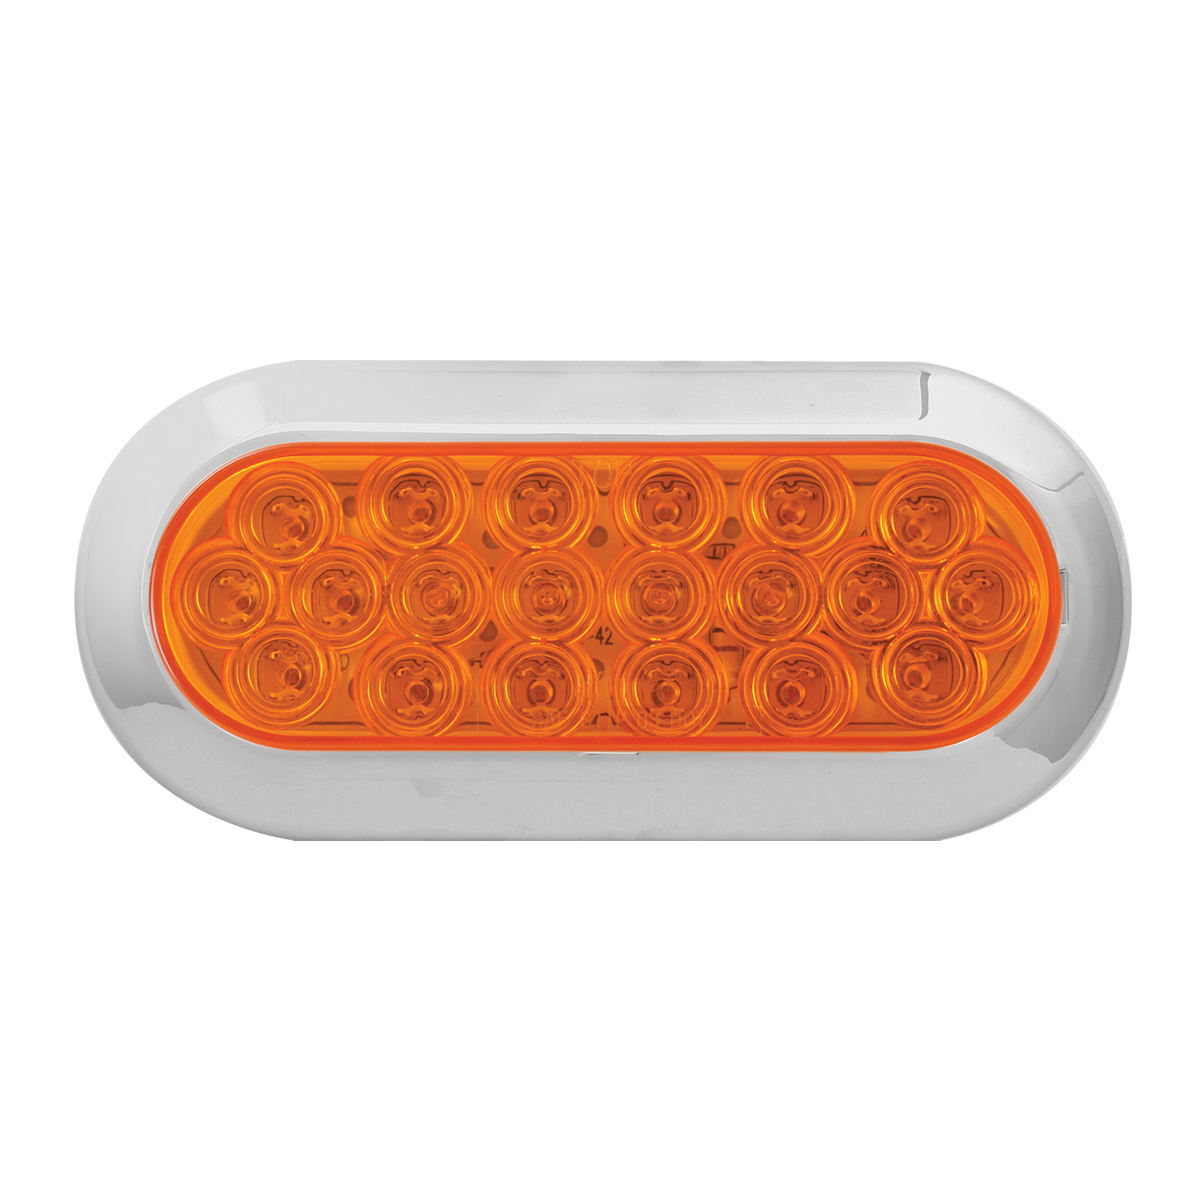 87724 Oval Fleet LED Light w/ Chrome Plastic Bezel